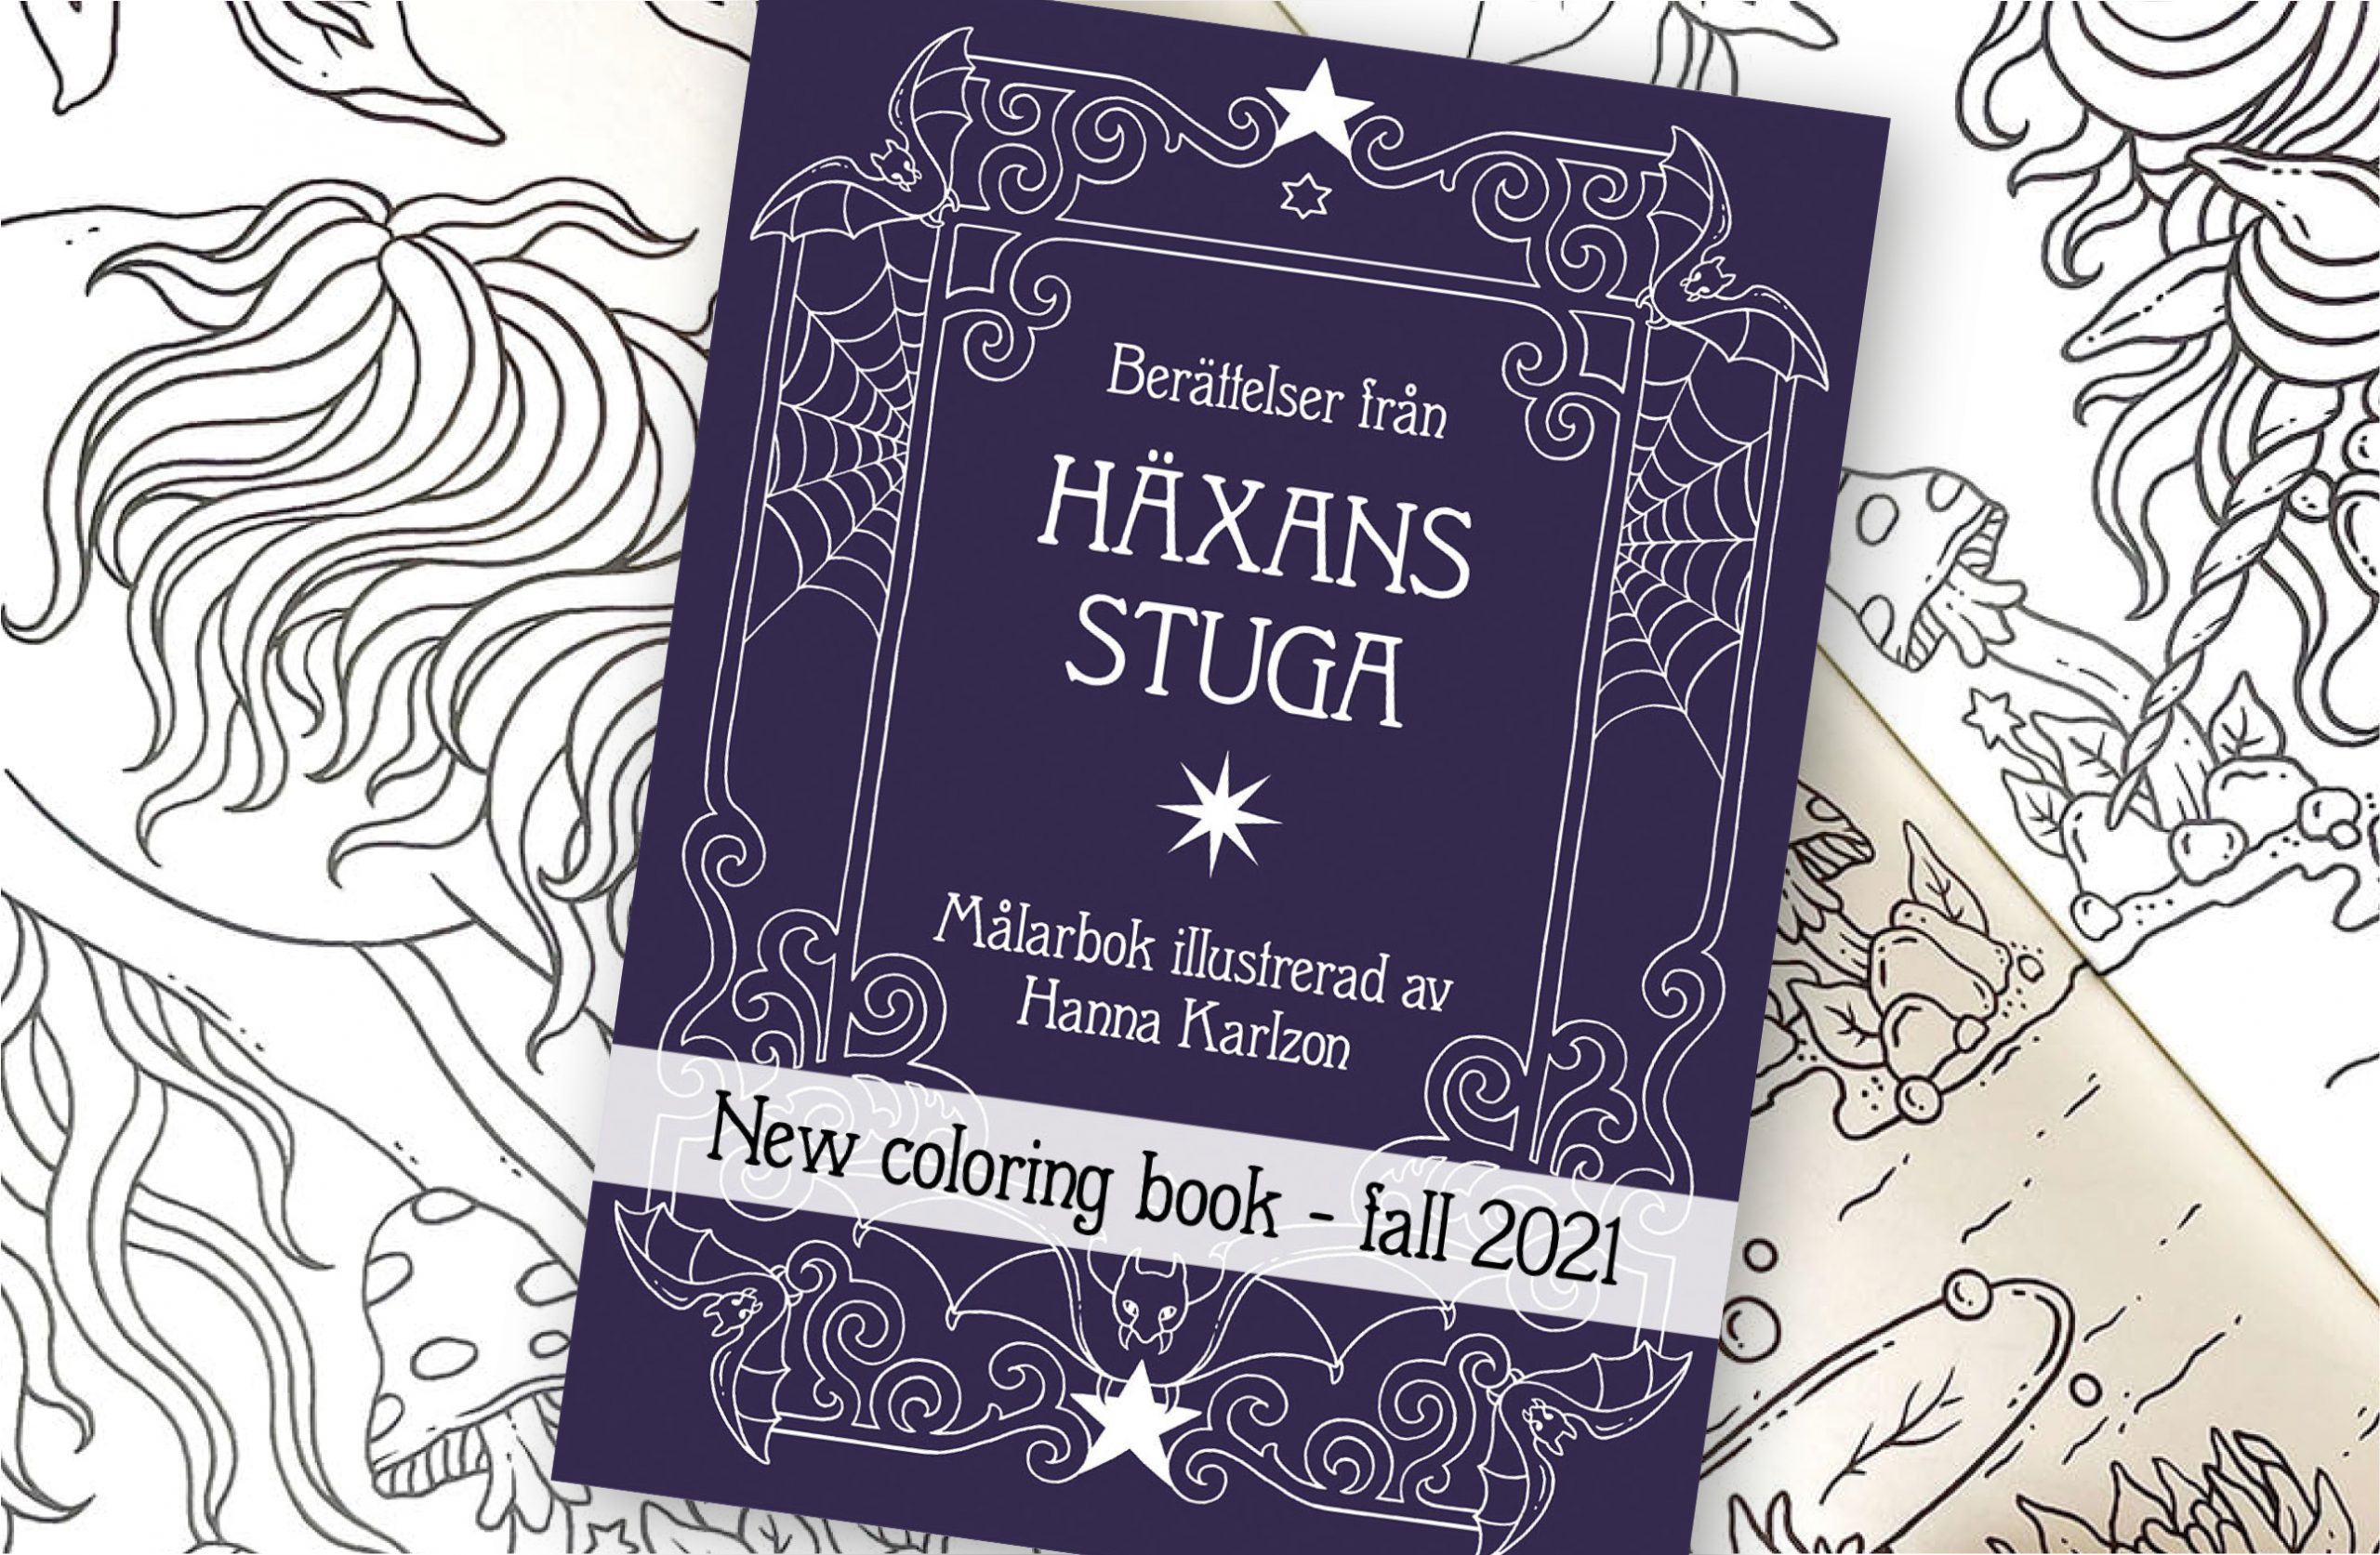 Hanna Karlzon reveals new book cover and title!